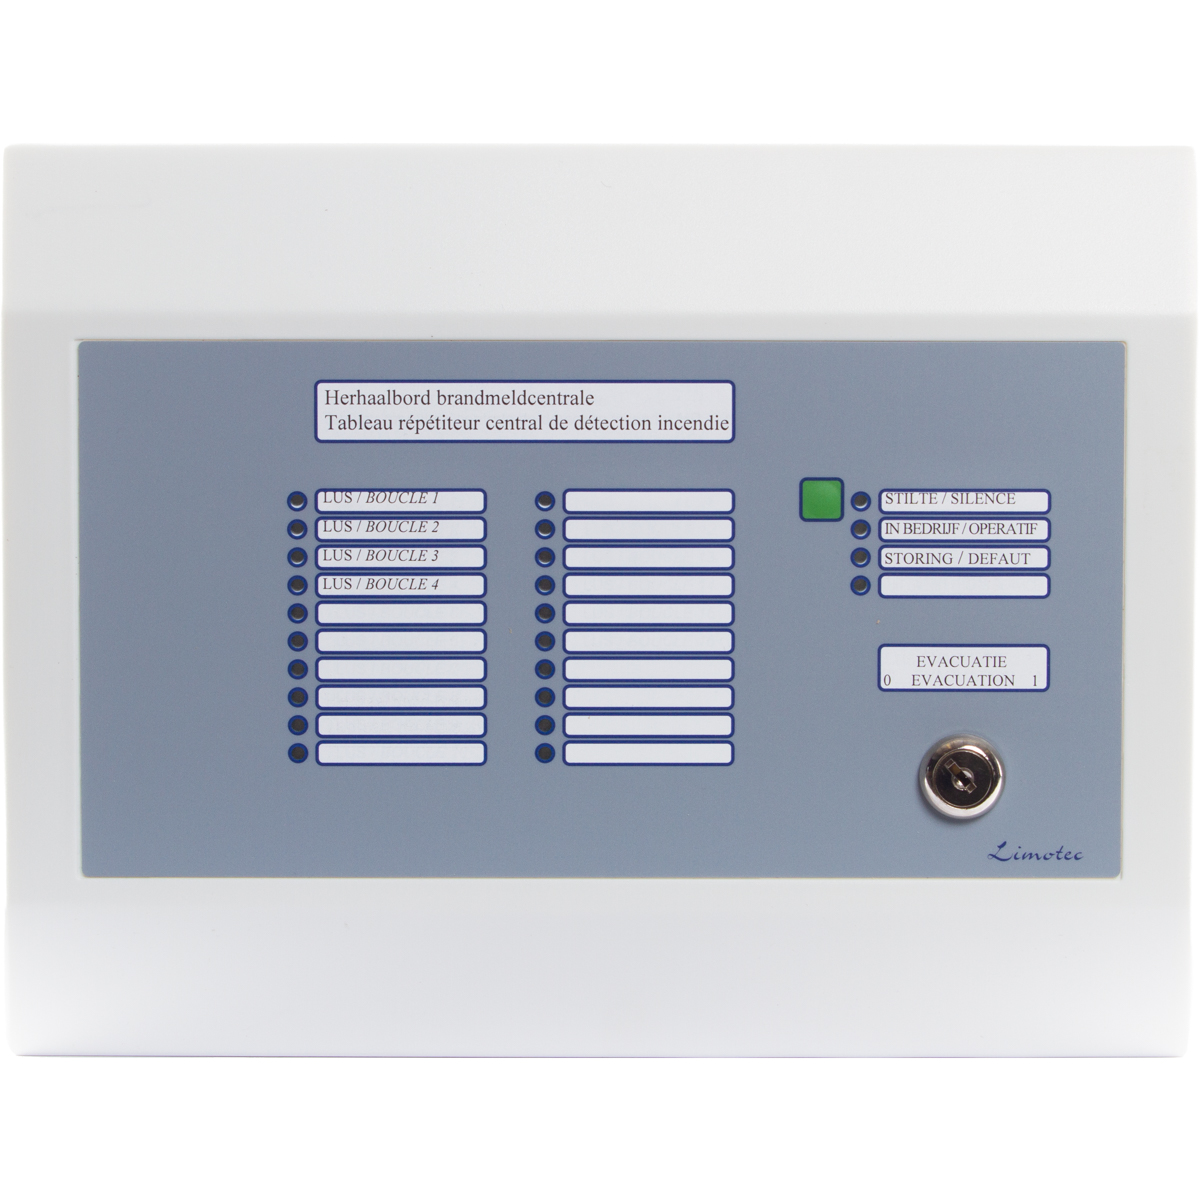 MD150 repeater panel